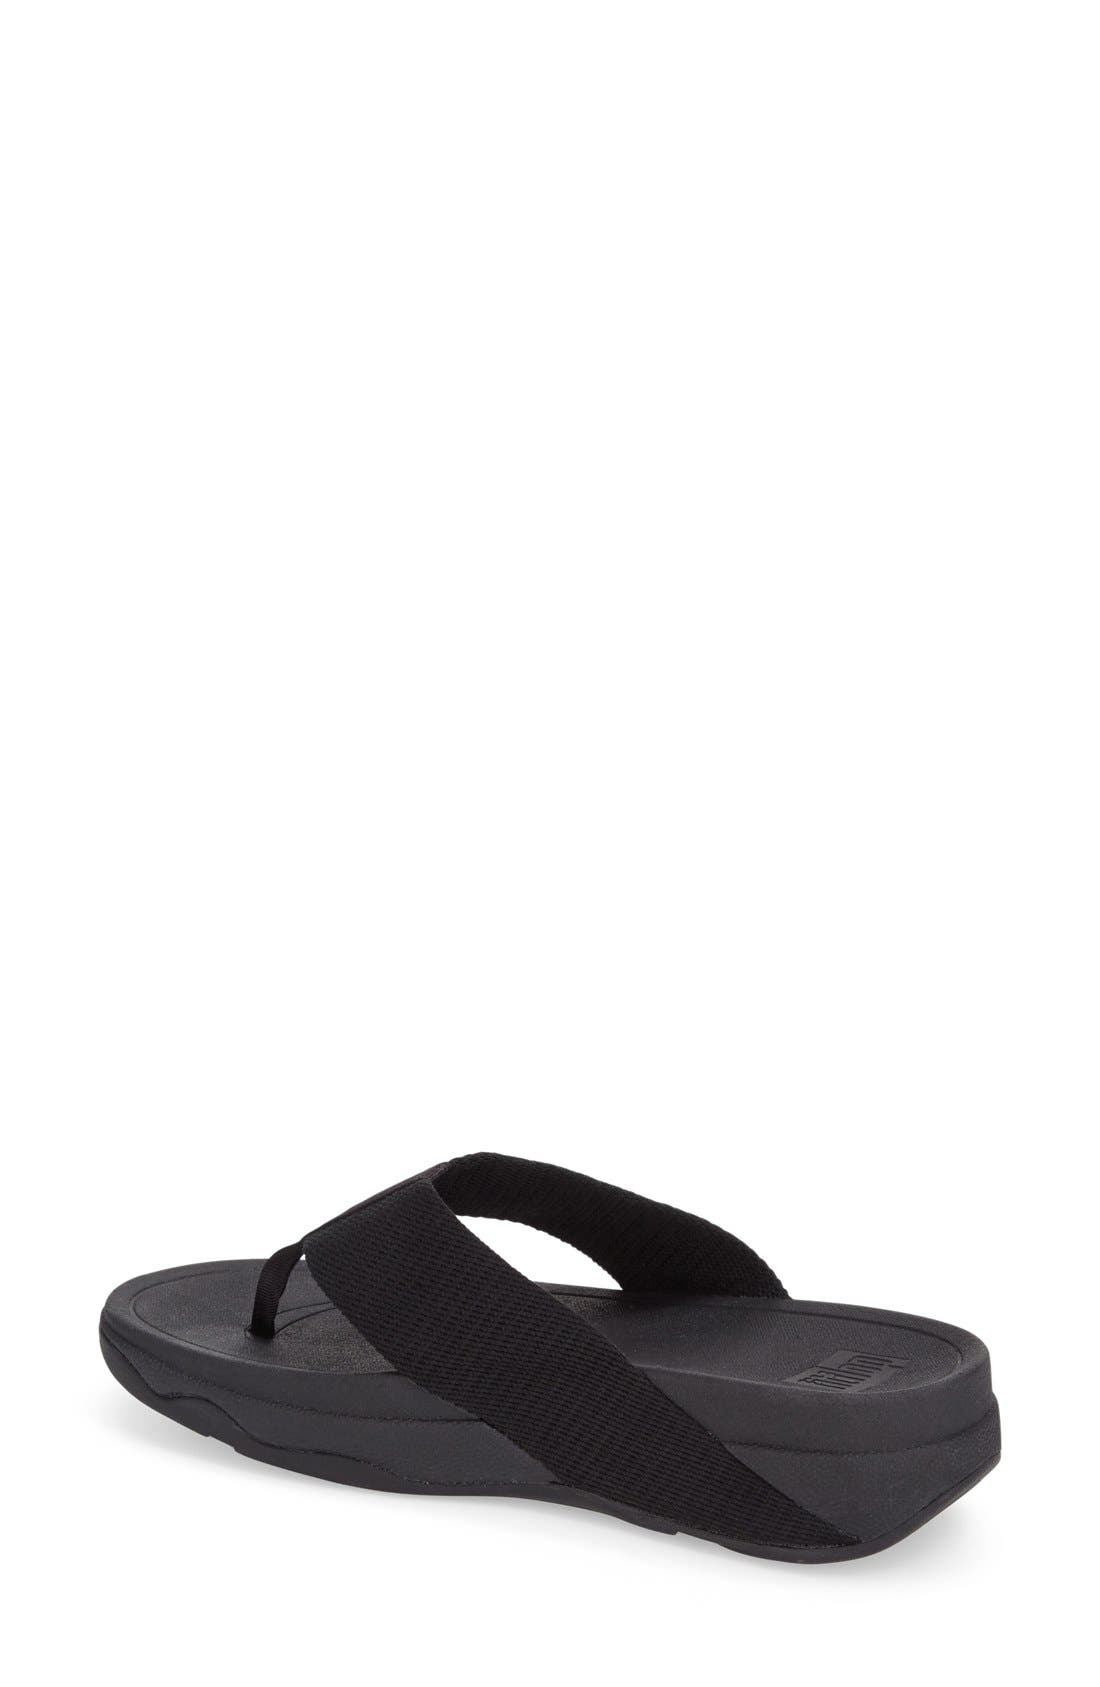 'Surfa' Thong Sandal,                             Alternate thumbnail 37, color,